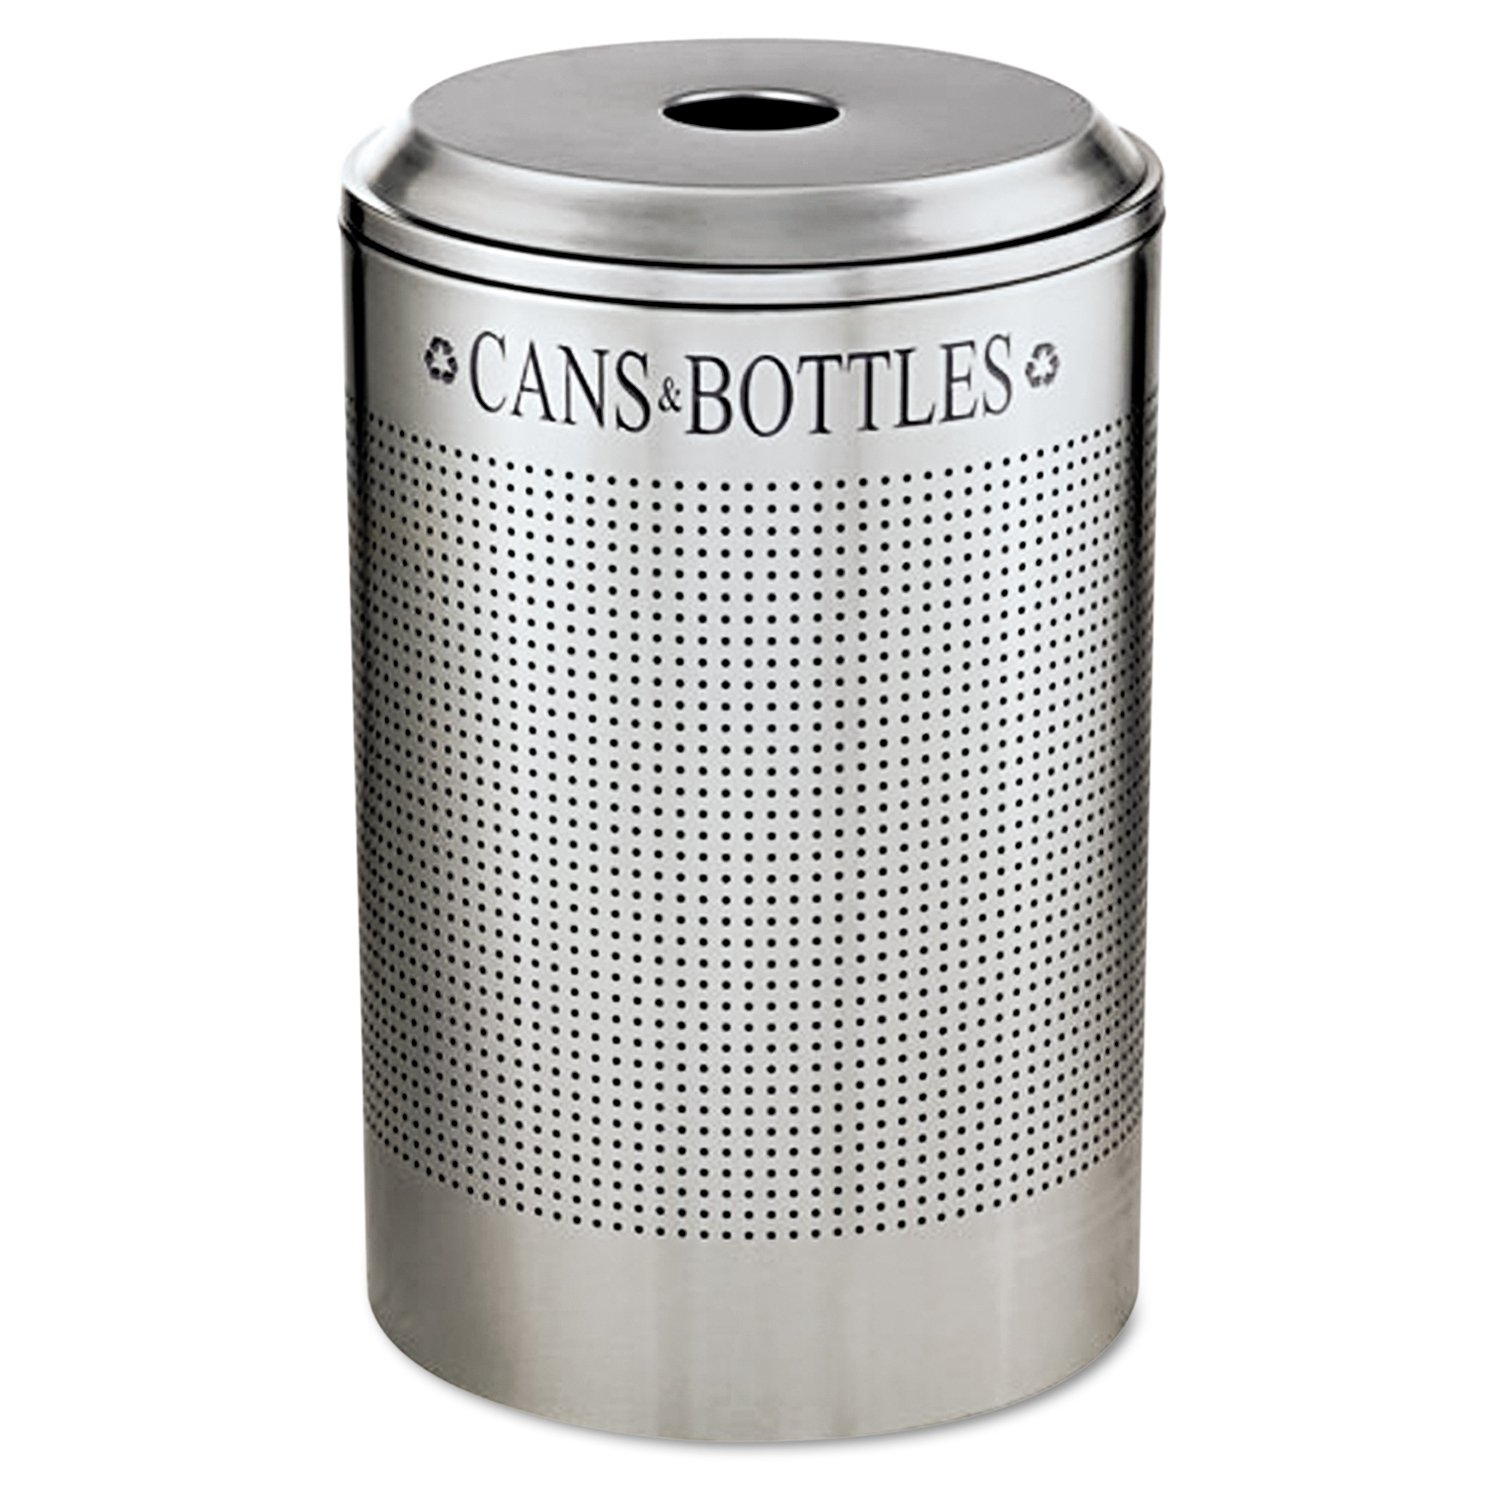 Rubbermaid Commercial Silhouette Can/Bottle Recycling Receptacle, Round, Steel, 26 Gallons, Silver (DRR24CSM)